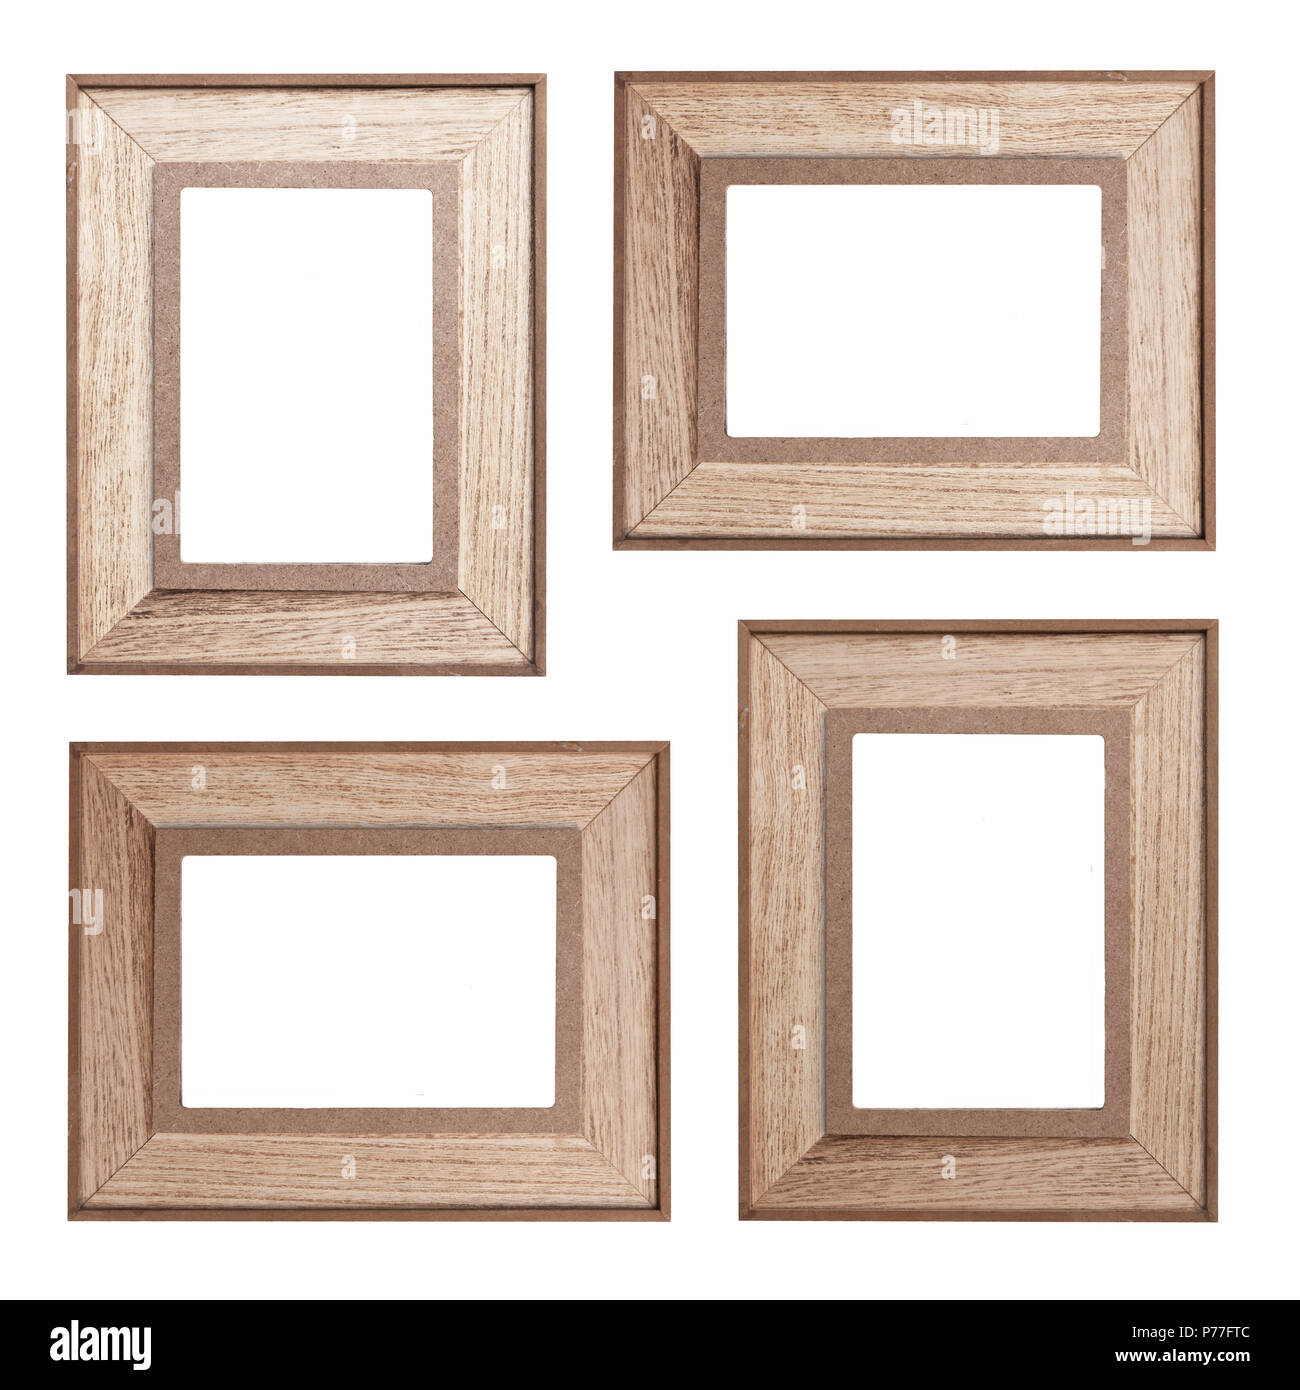 Set of wooden photo frames isolated on white background - vintage ...